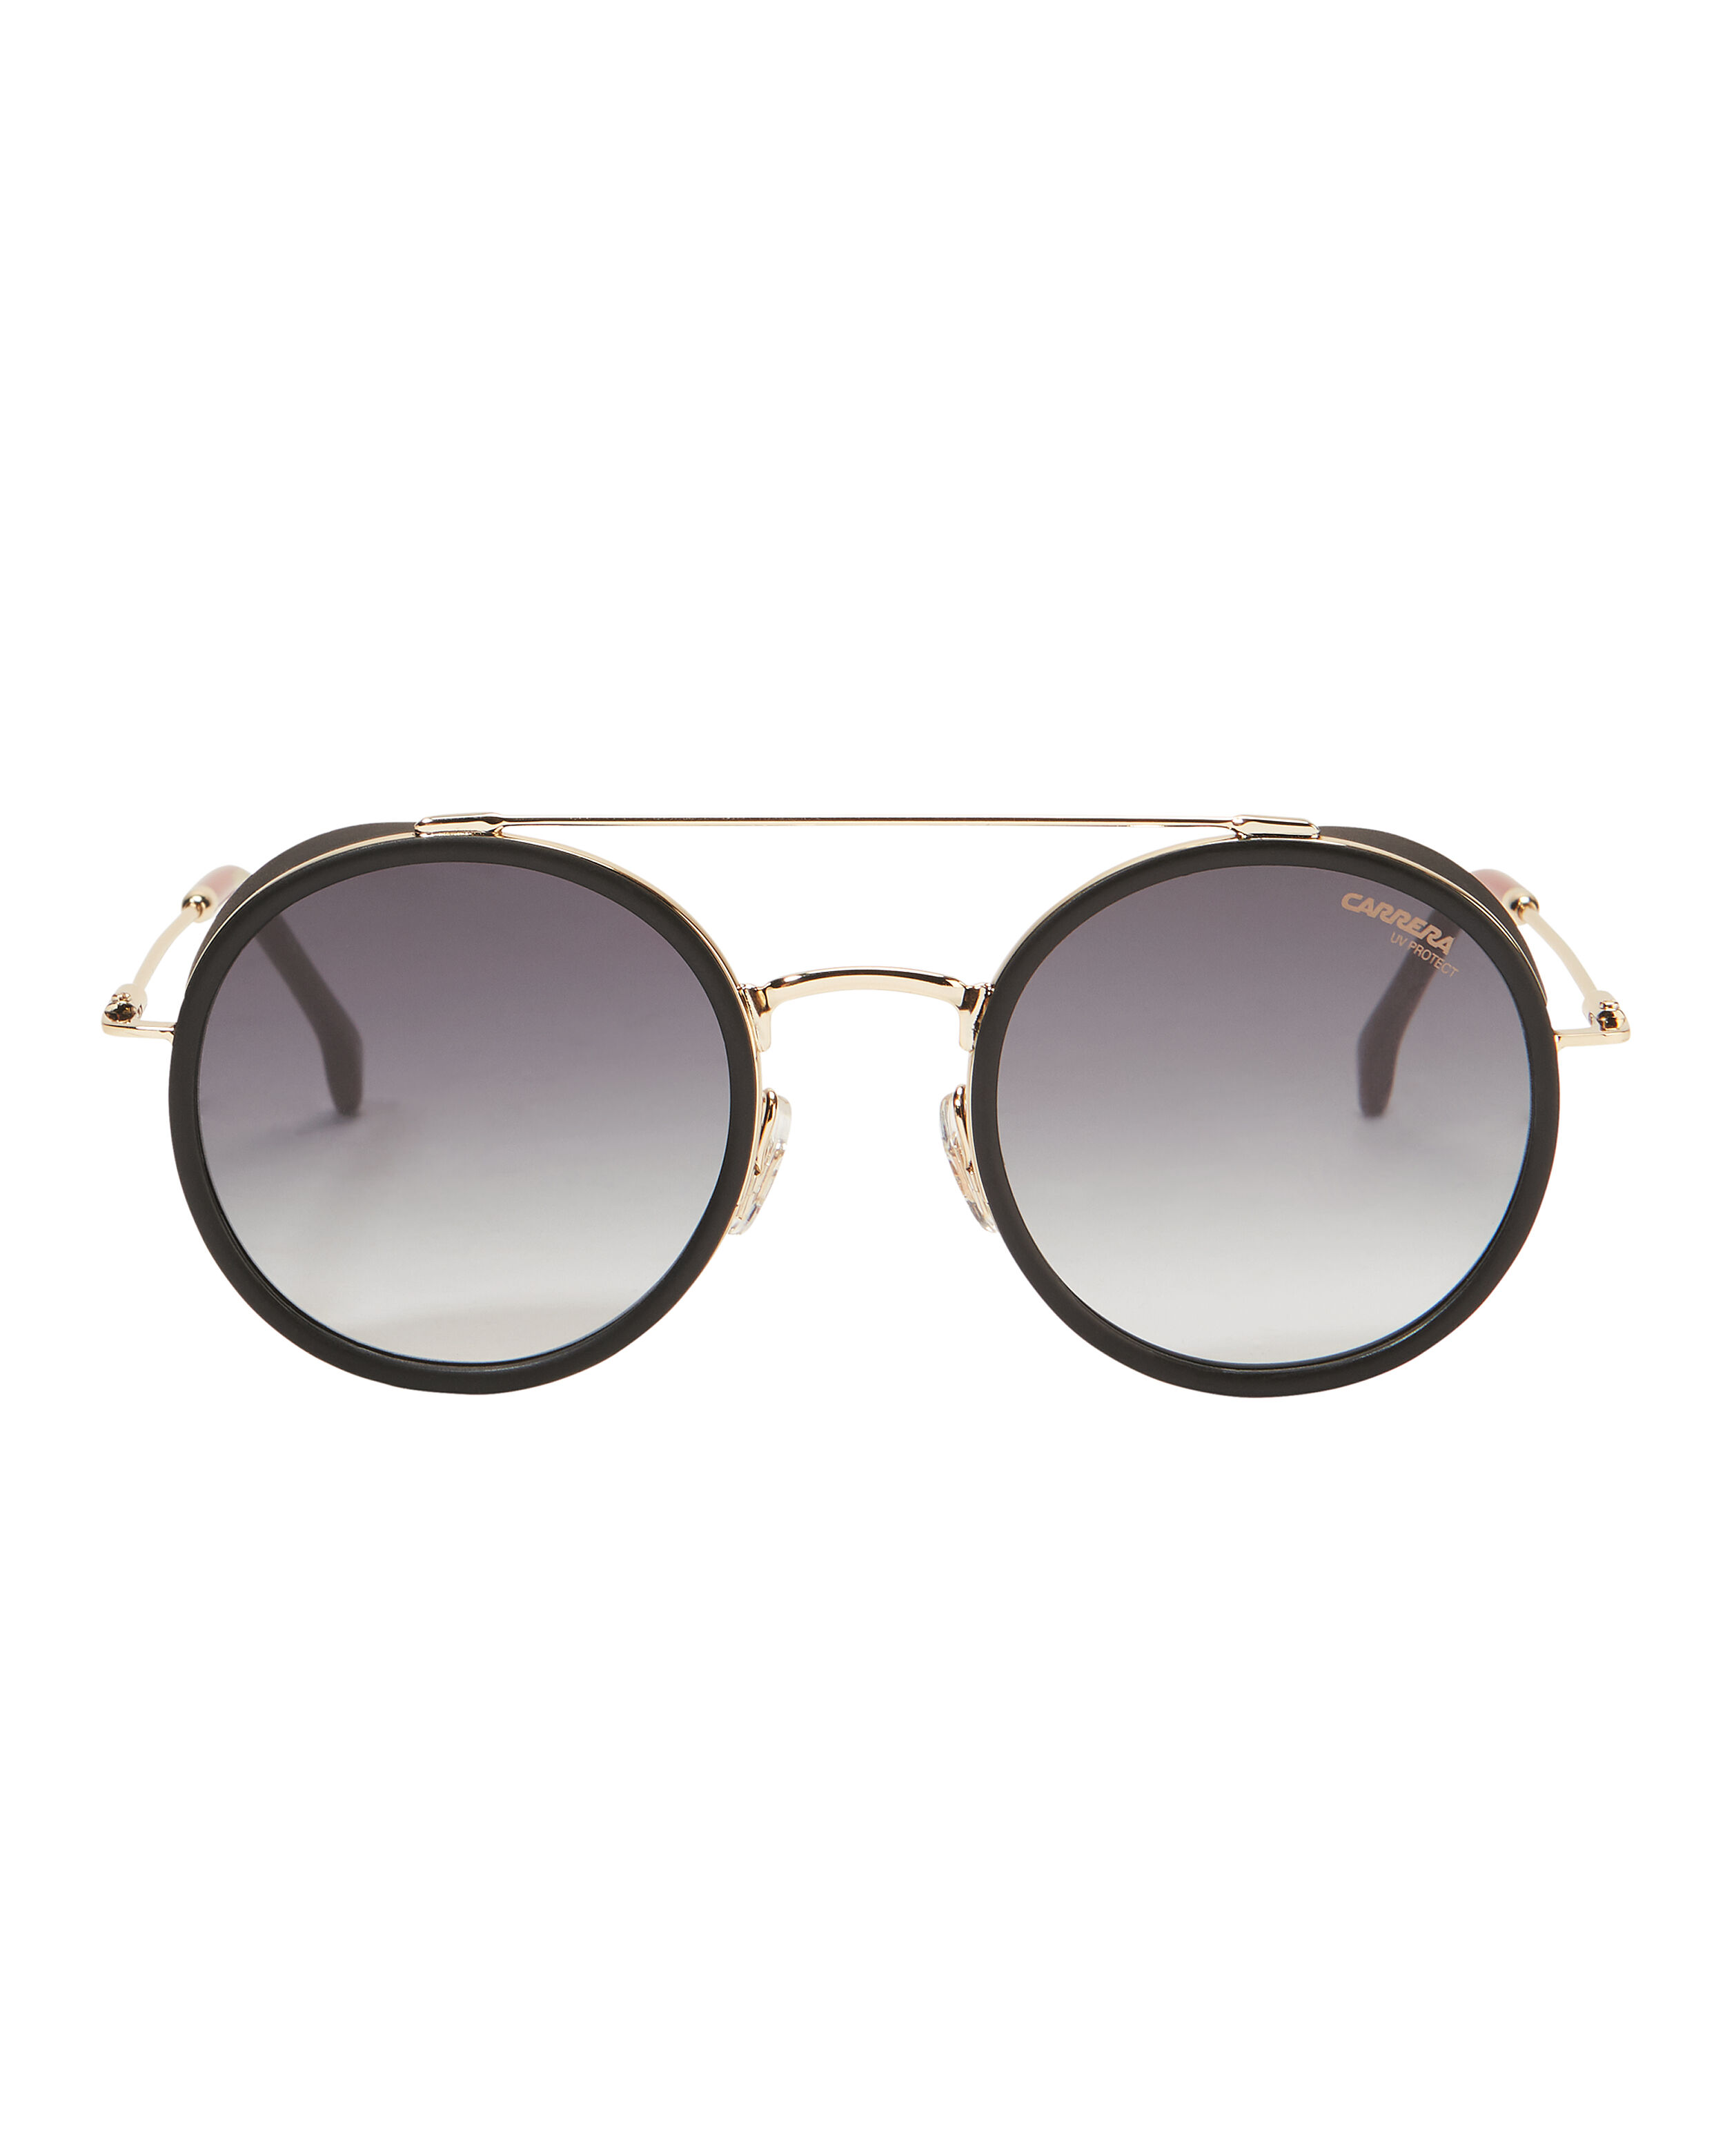 David Marc GEORGIA Sonnenbrille gold s7SND5P